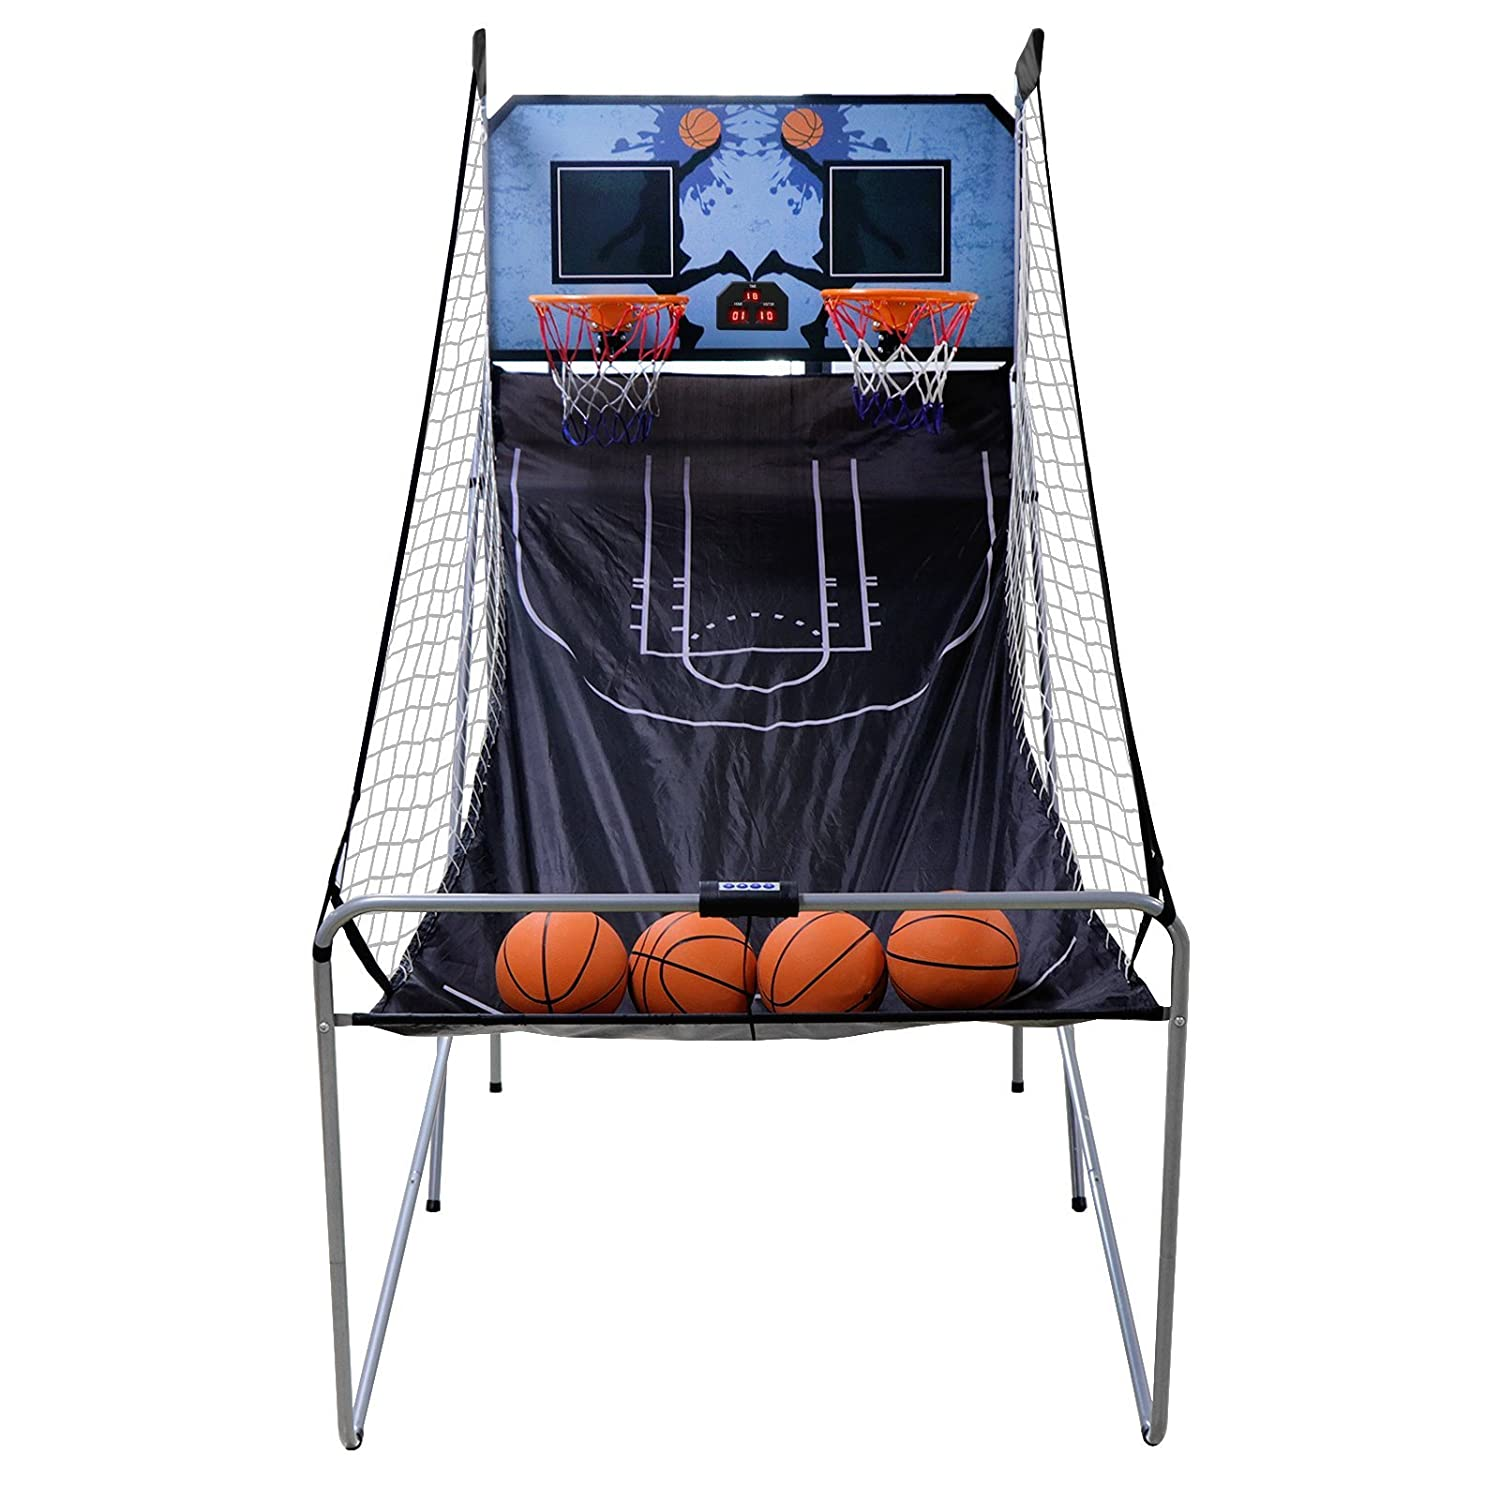 Nova Microdermabrasion Foldable Indoor Basketball Arcade Game Double Shot 2 Player W/ 4 Balls, Electronic Scoreboard and Inflation Pump (#1)